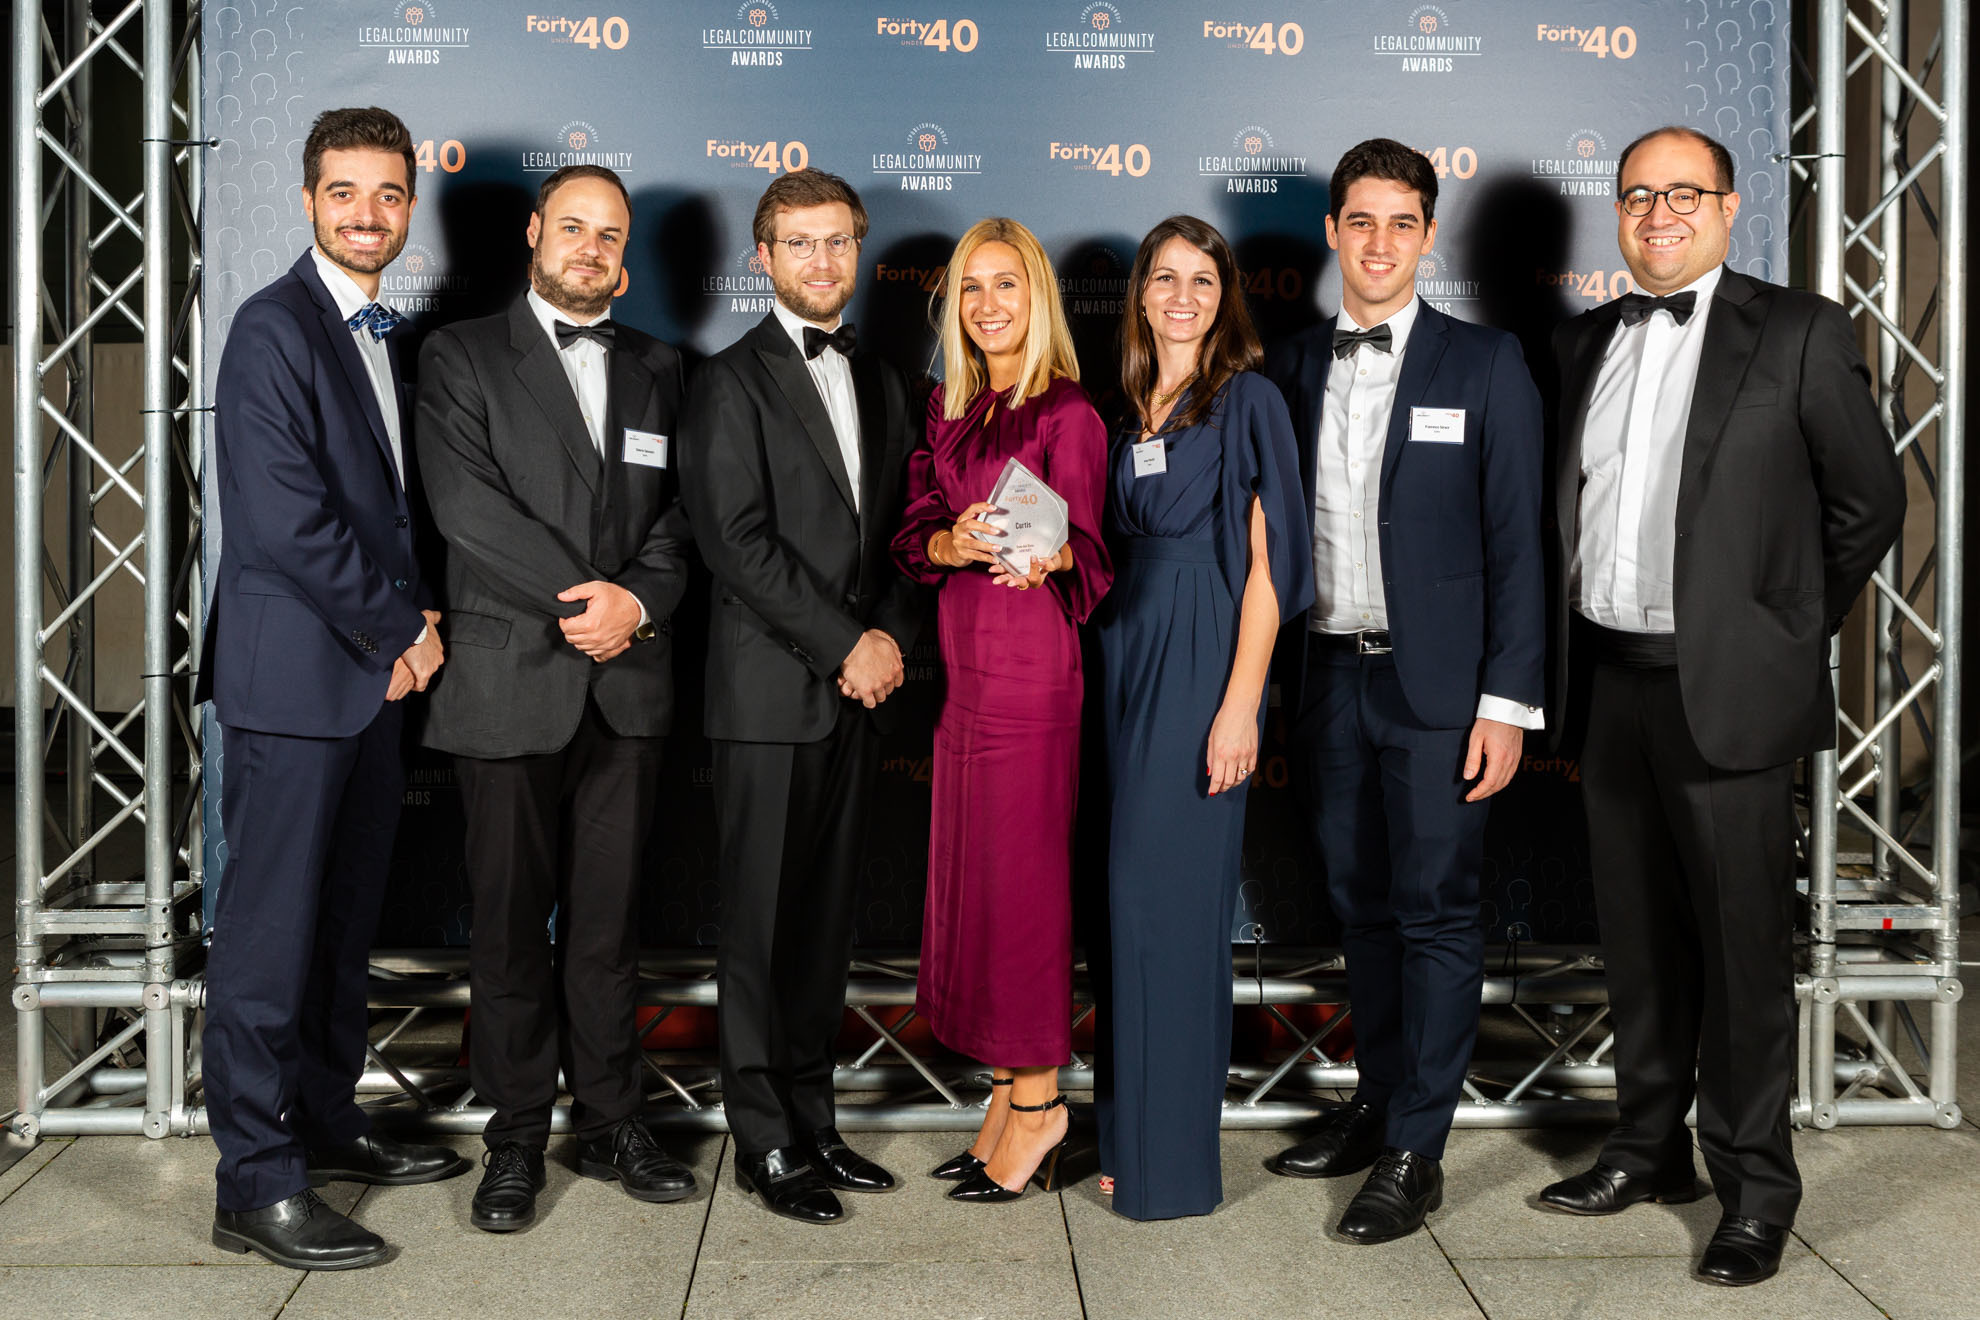 Curtis wins Arbitration Team of the Year at Legal Community Awards 2020